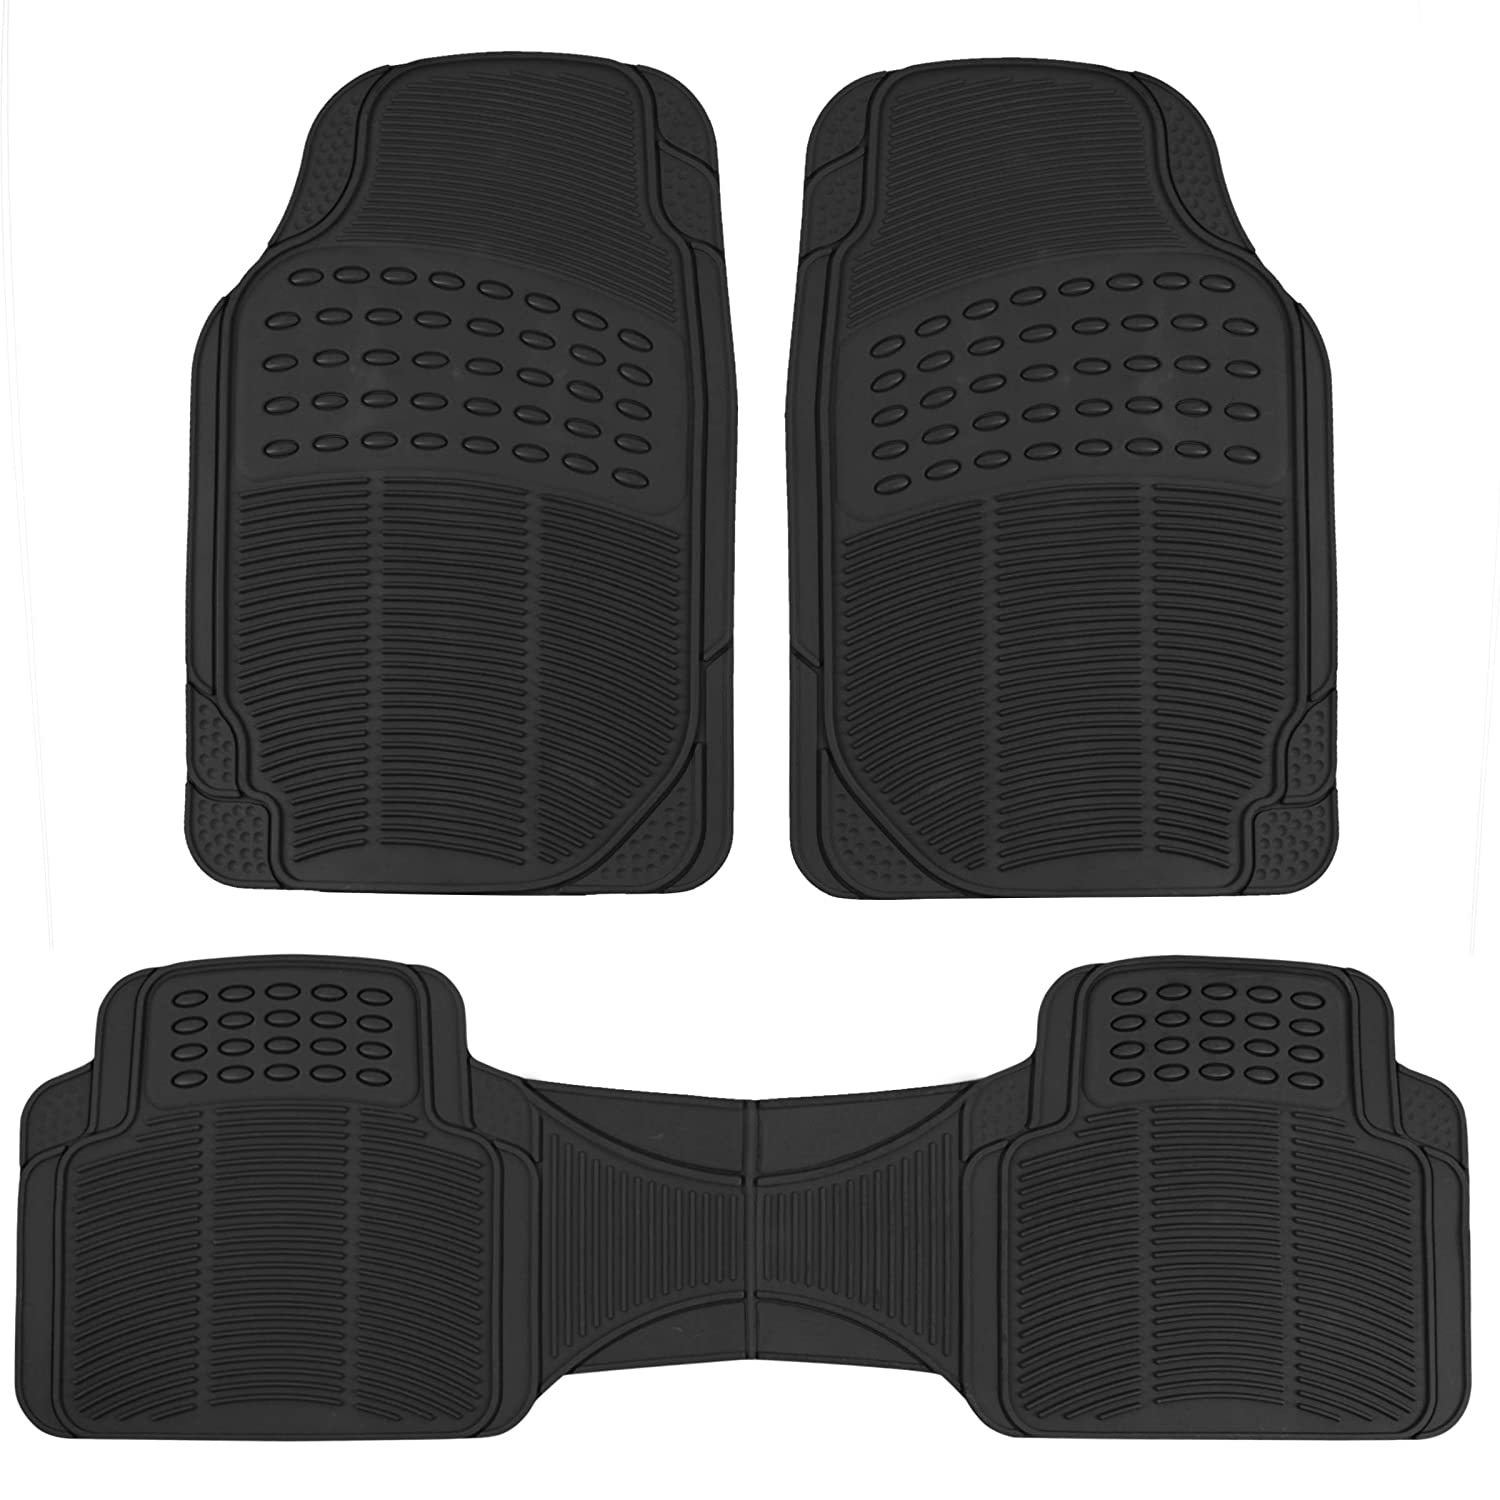 BDK MT783PLUS ProLiner Original 3pc Heavy-Duty Front & Rear Rubber Floor Mats for Car SUV Van & Truck - All Weather Protection Universal Fit (Black)